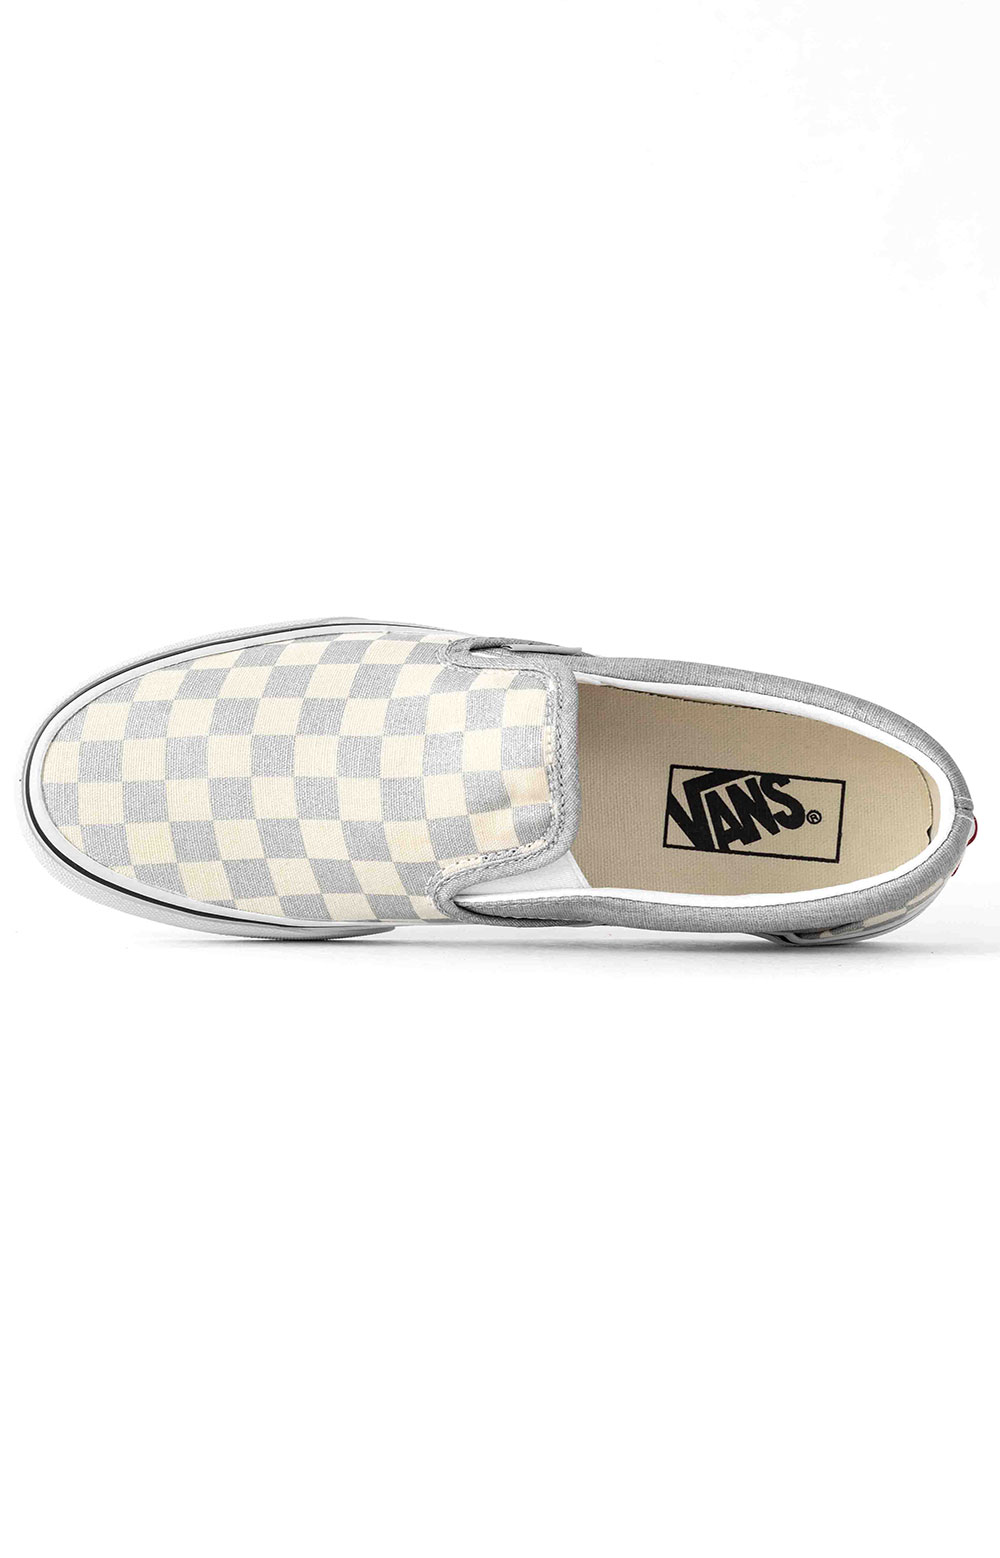 (U38WWS3) Checkerboard Classic Slip-On Shoe - Silver 2